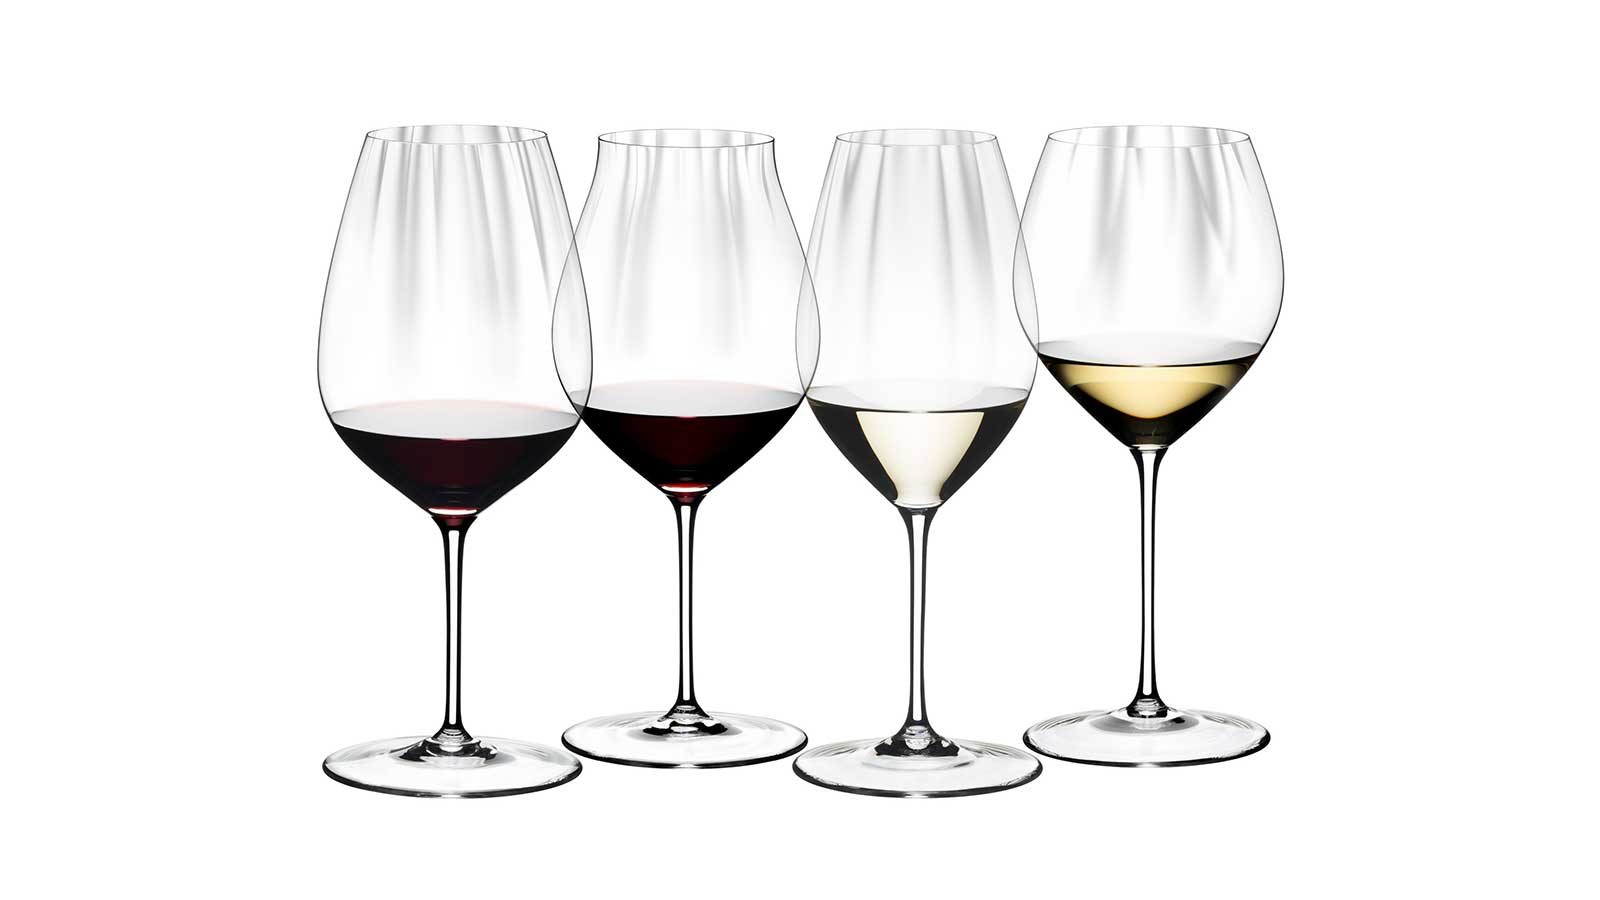 Riedel Performance Series wineglasses